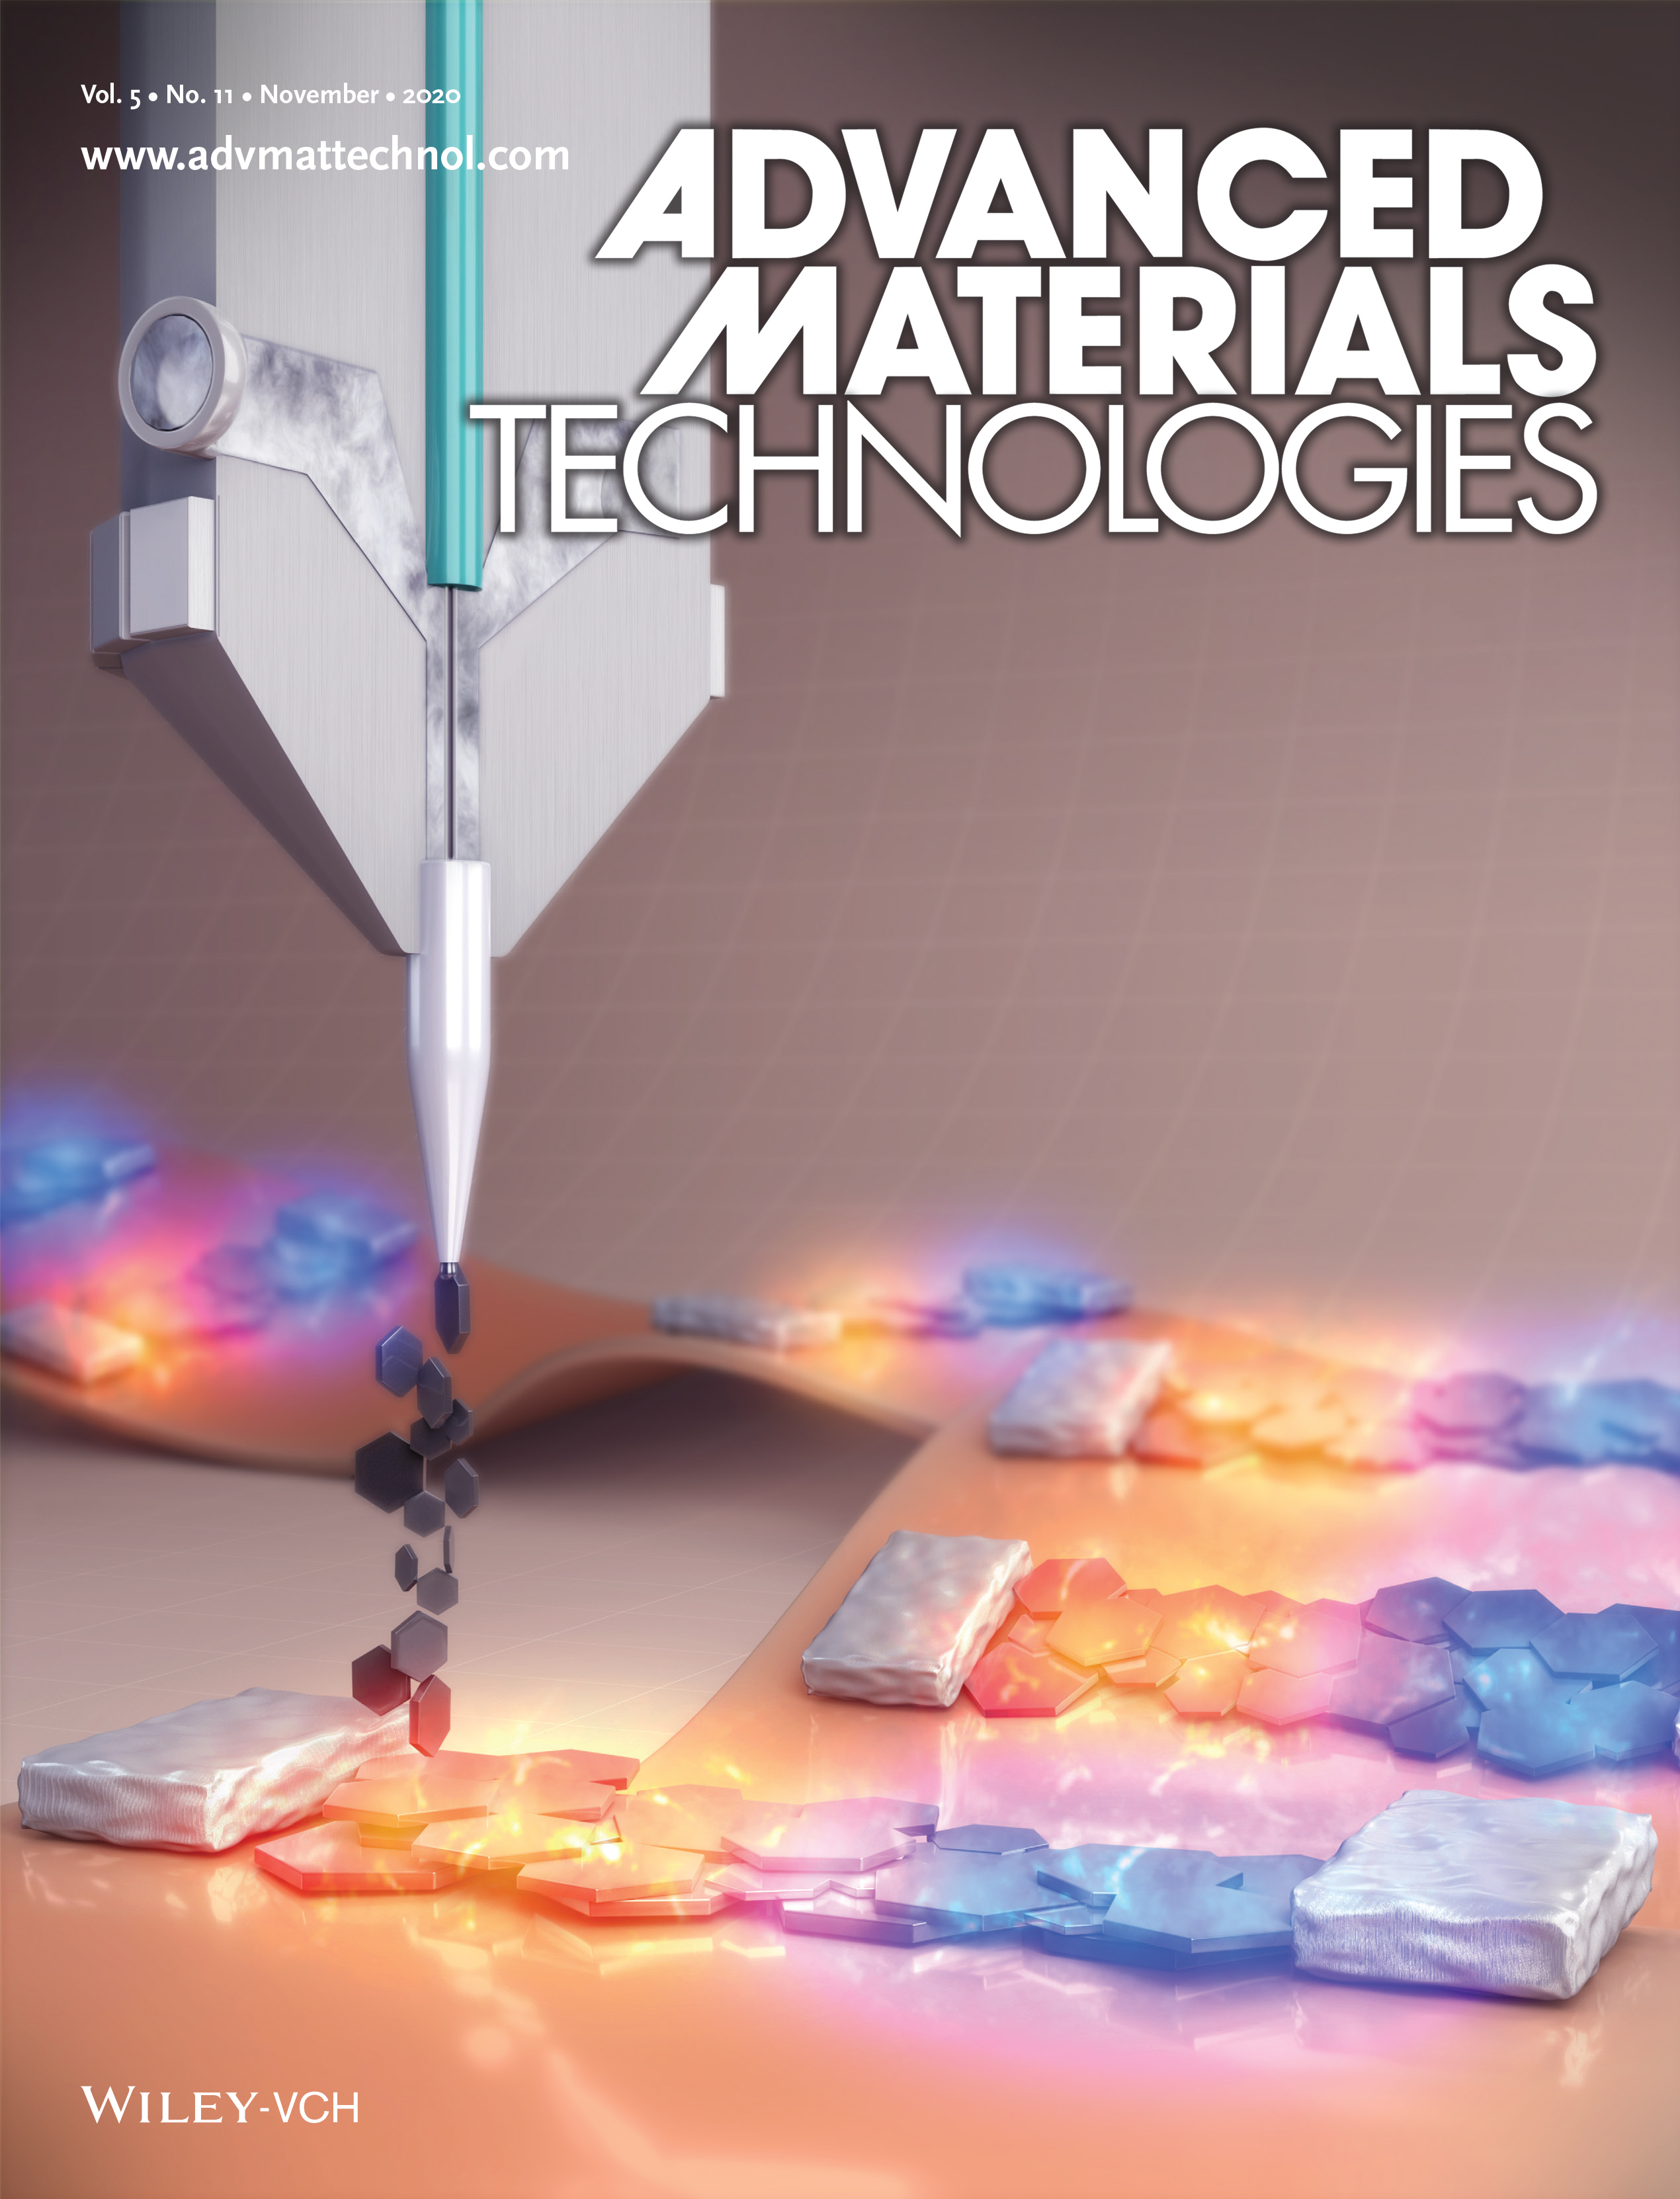 Cover art for Advanced Materials Technology journal, 11/2020